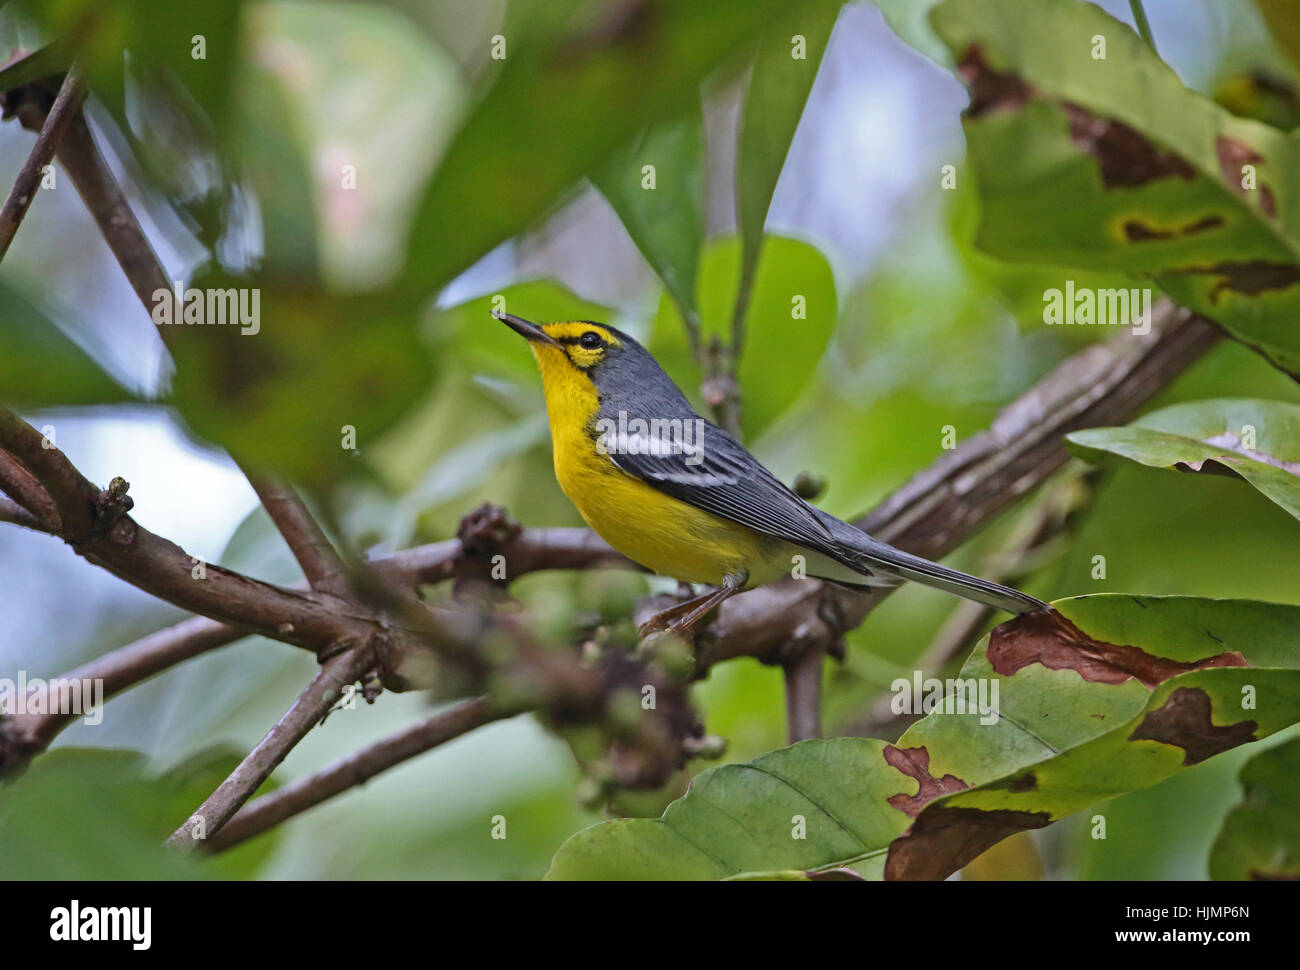 St Lucia Warbler (Setophaga delicata) adult perched on branch   Fond Doux Plantation, St Lucia, Lesser Antilles - Stock Image